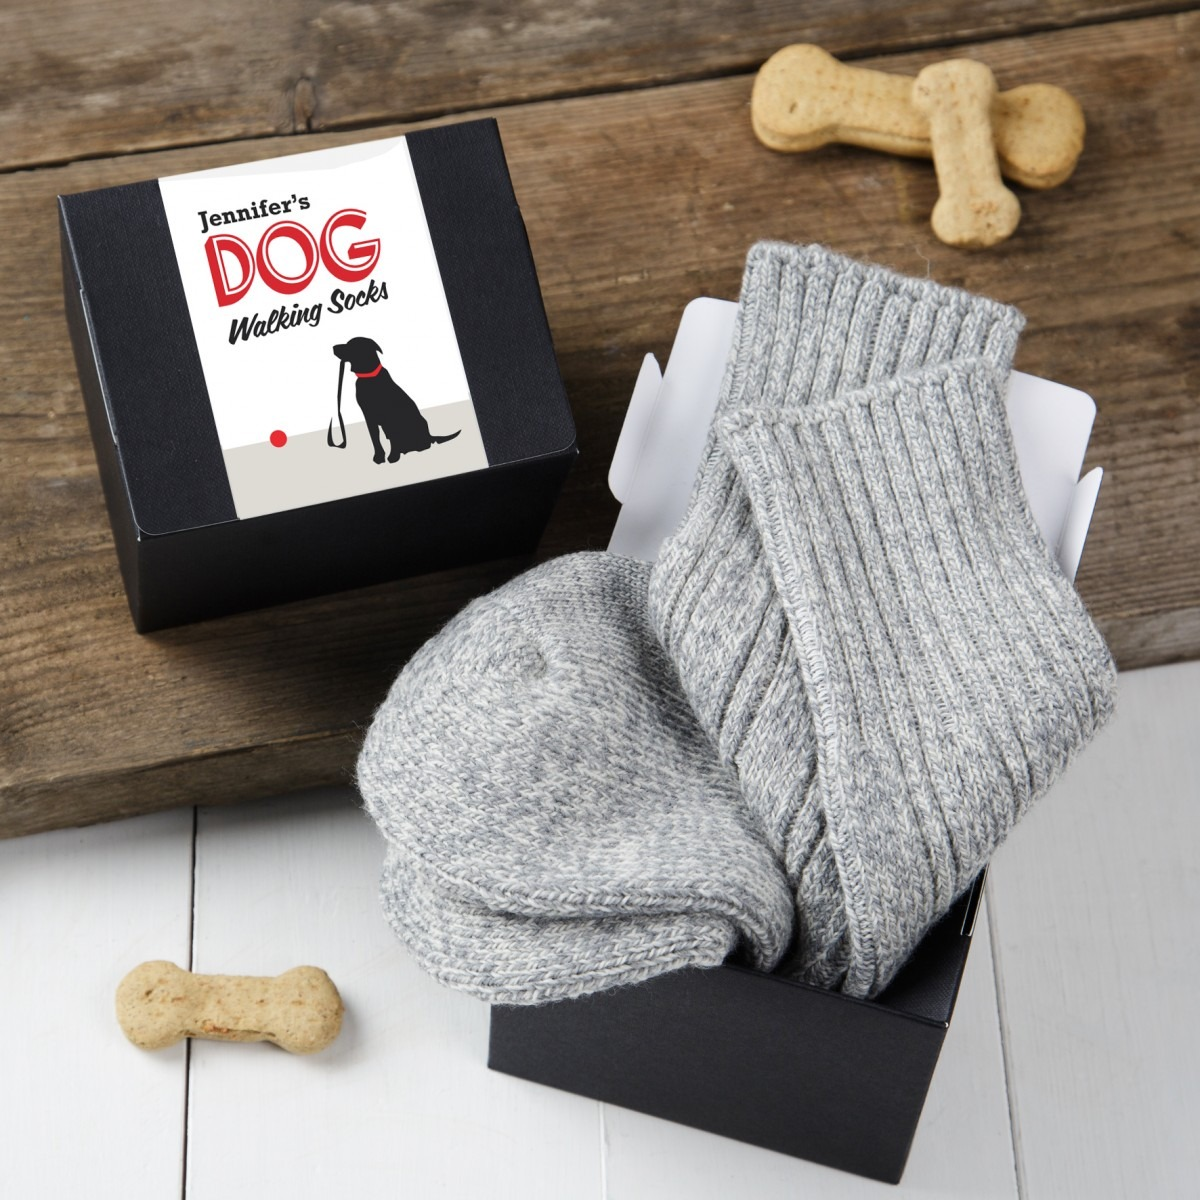 dog walking socks gifts for a dog owner